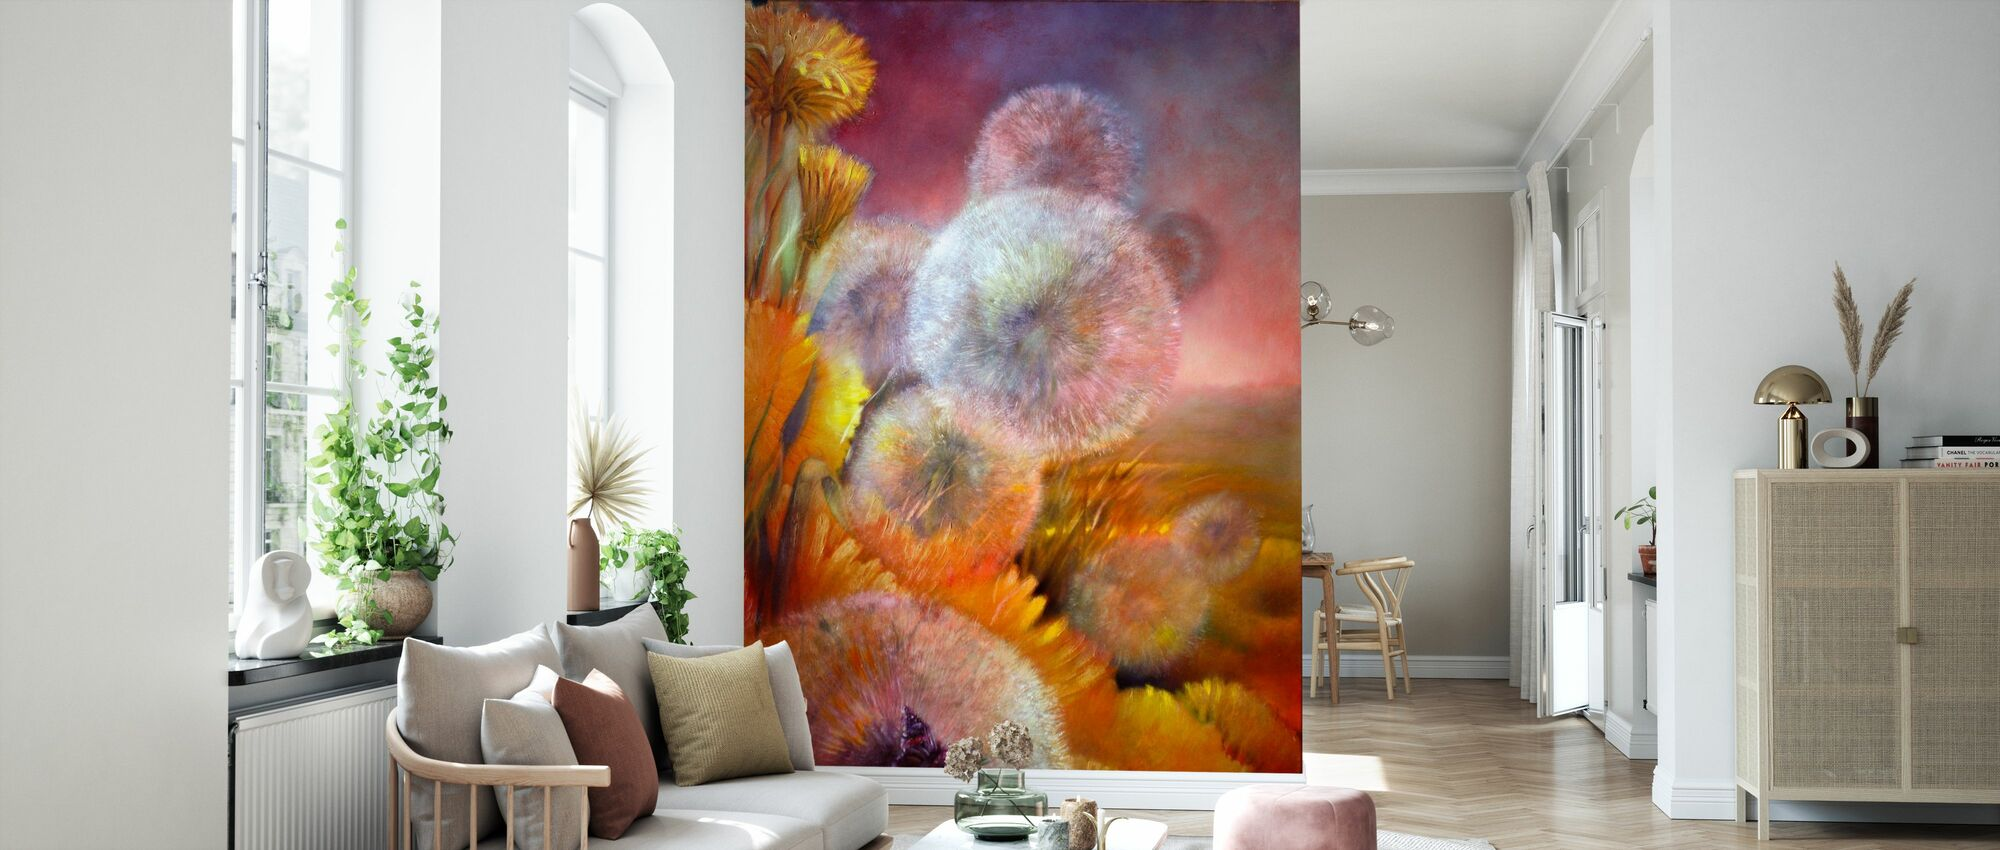 Dandelion and Butterfly - Wallpaper - Living Room